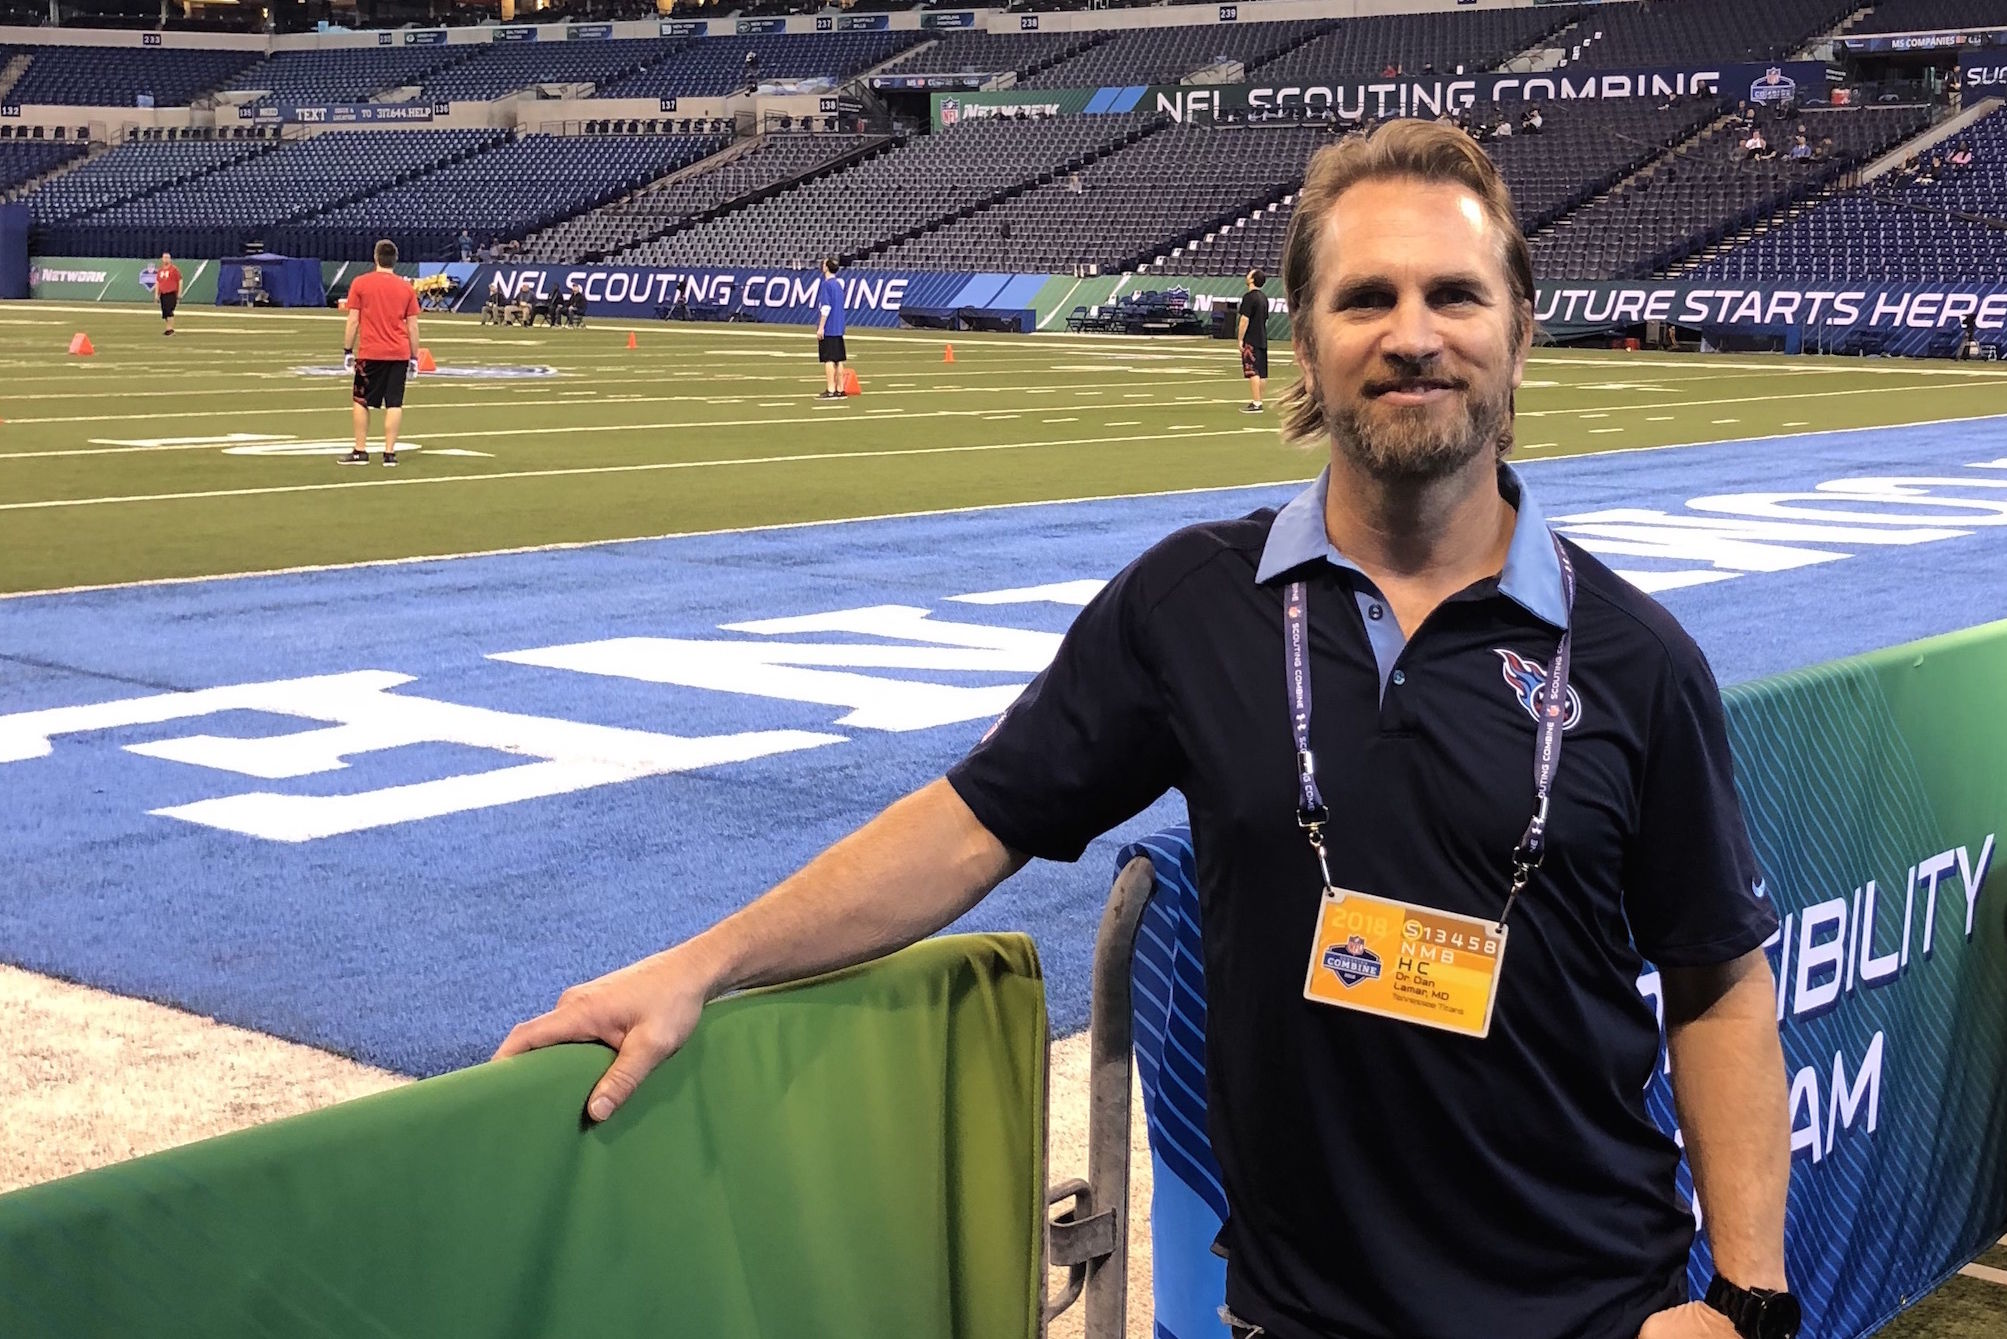 Dr. daniel lamar at the nfl scouting combine untxmv